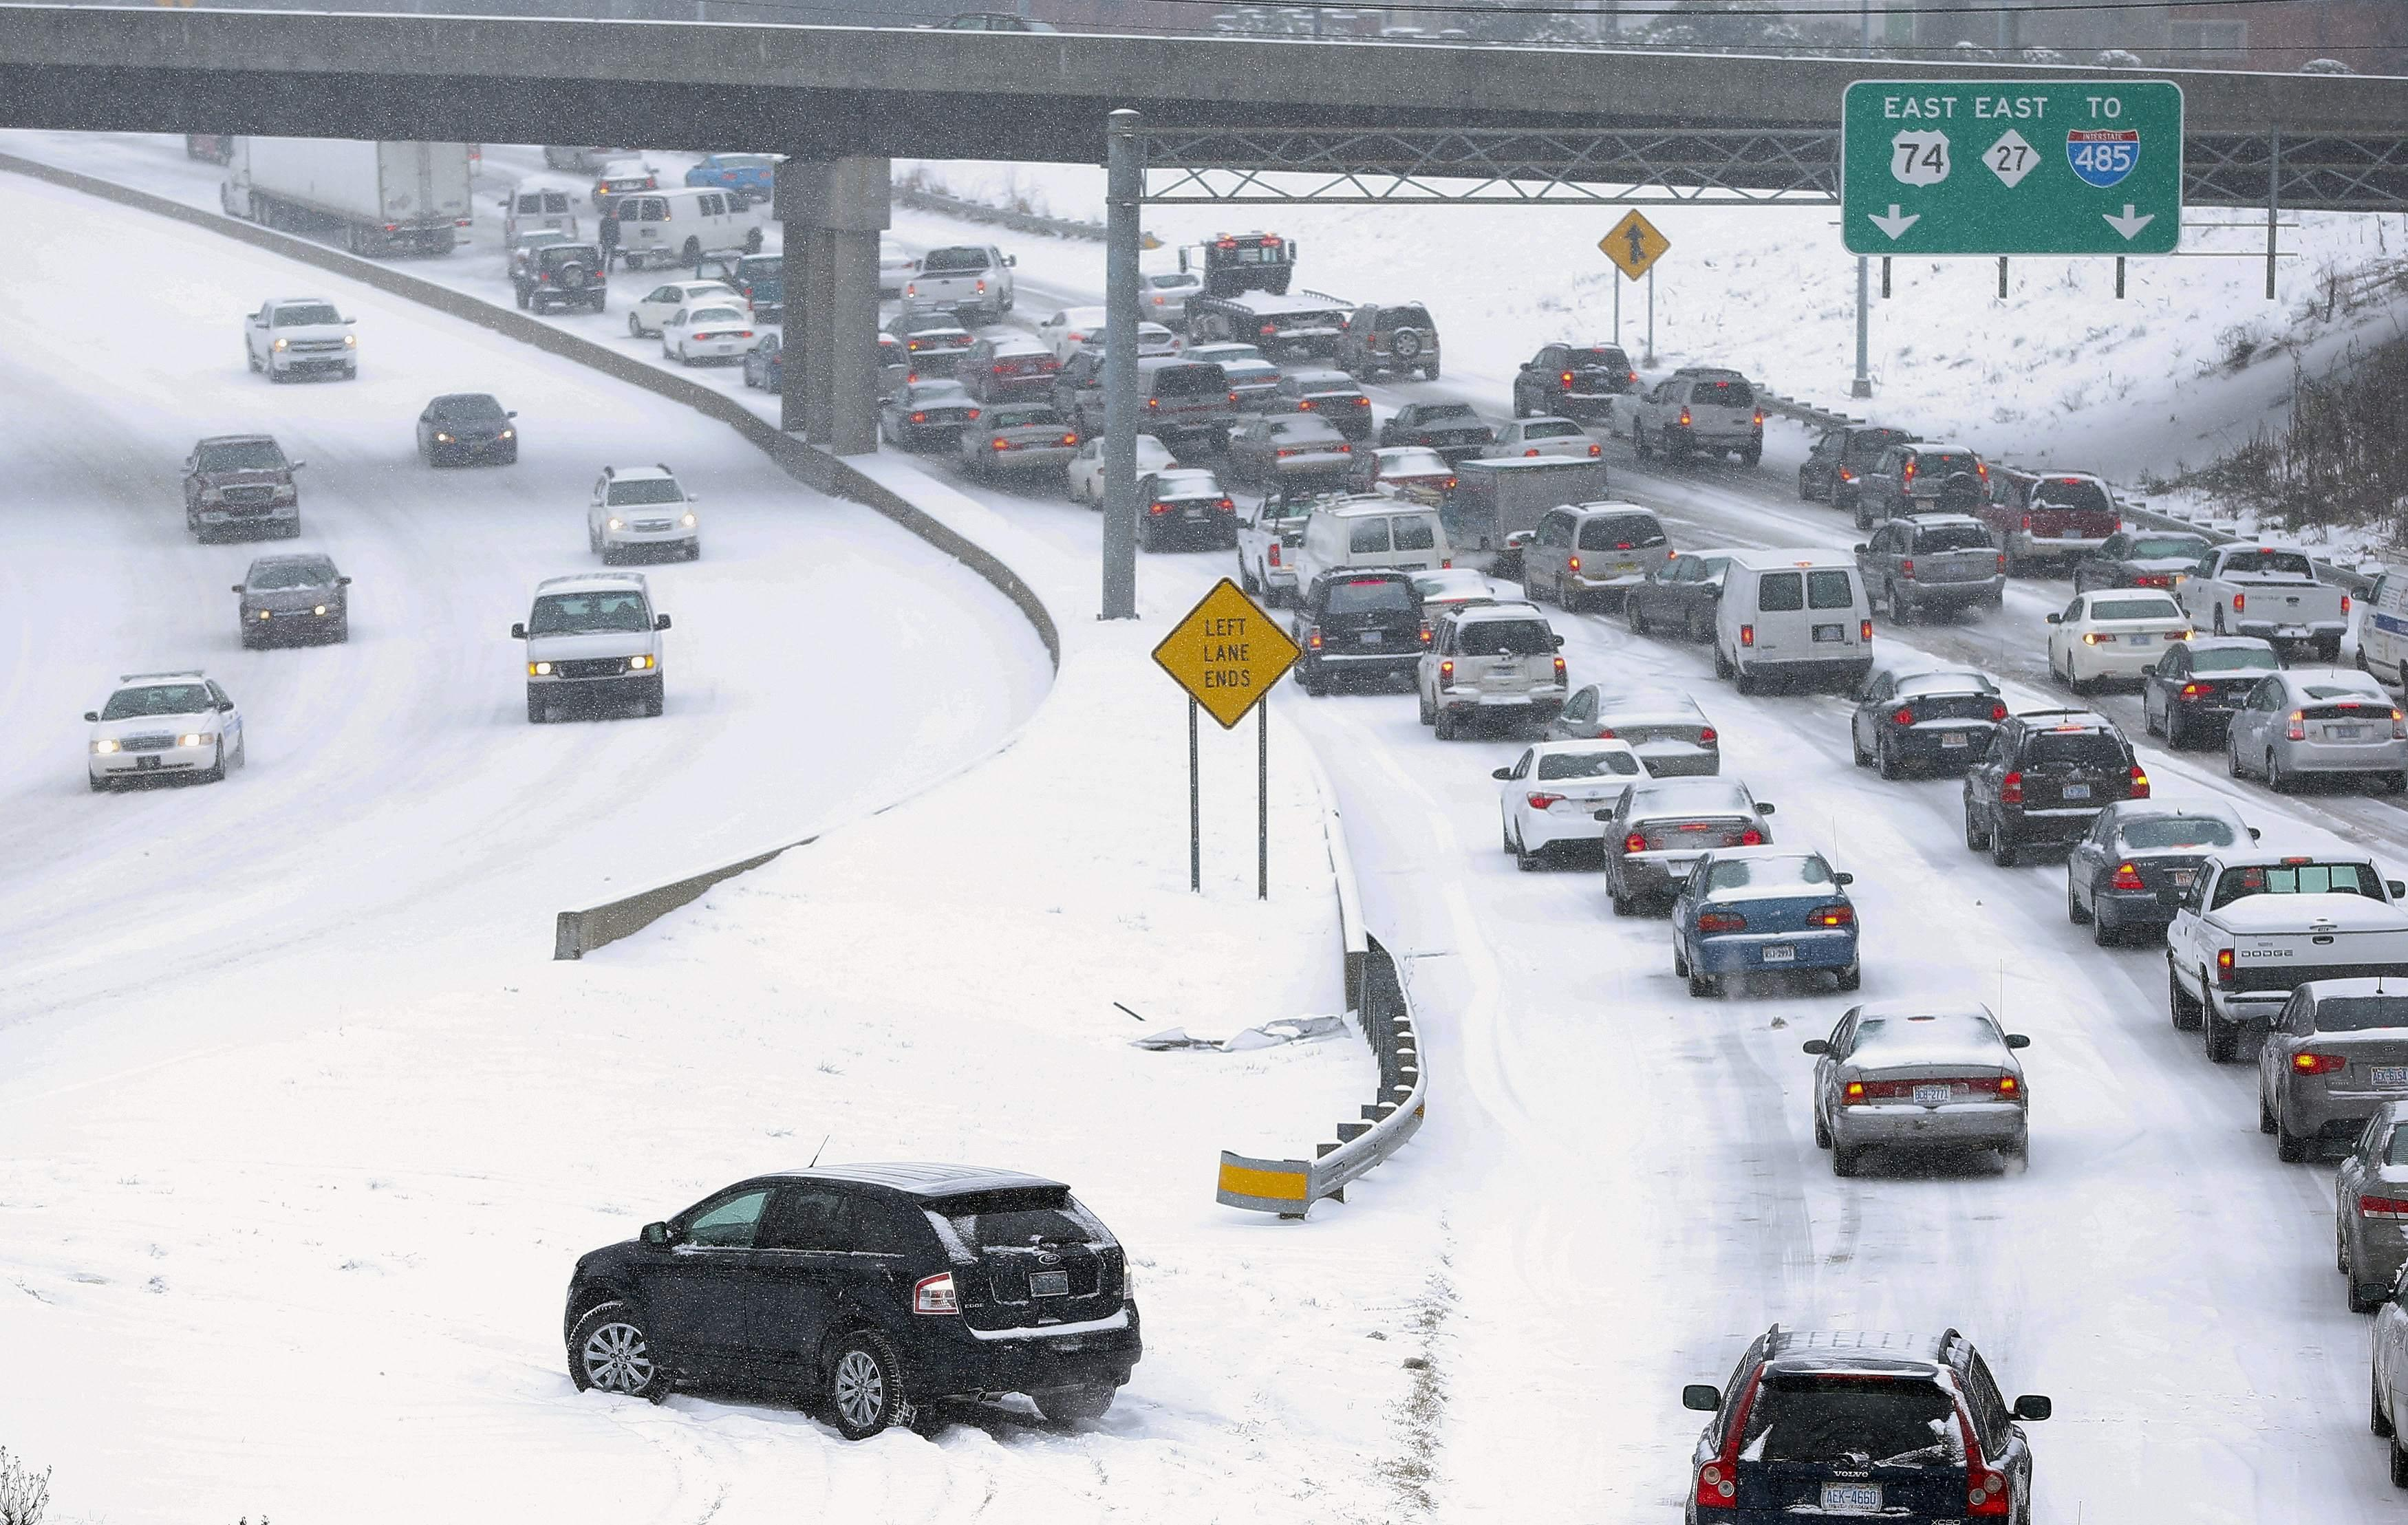 Winter Storm Pax In Pictures Snow And Ice Batter Us East